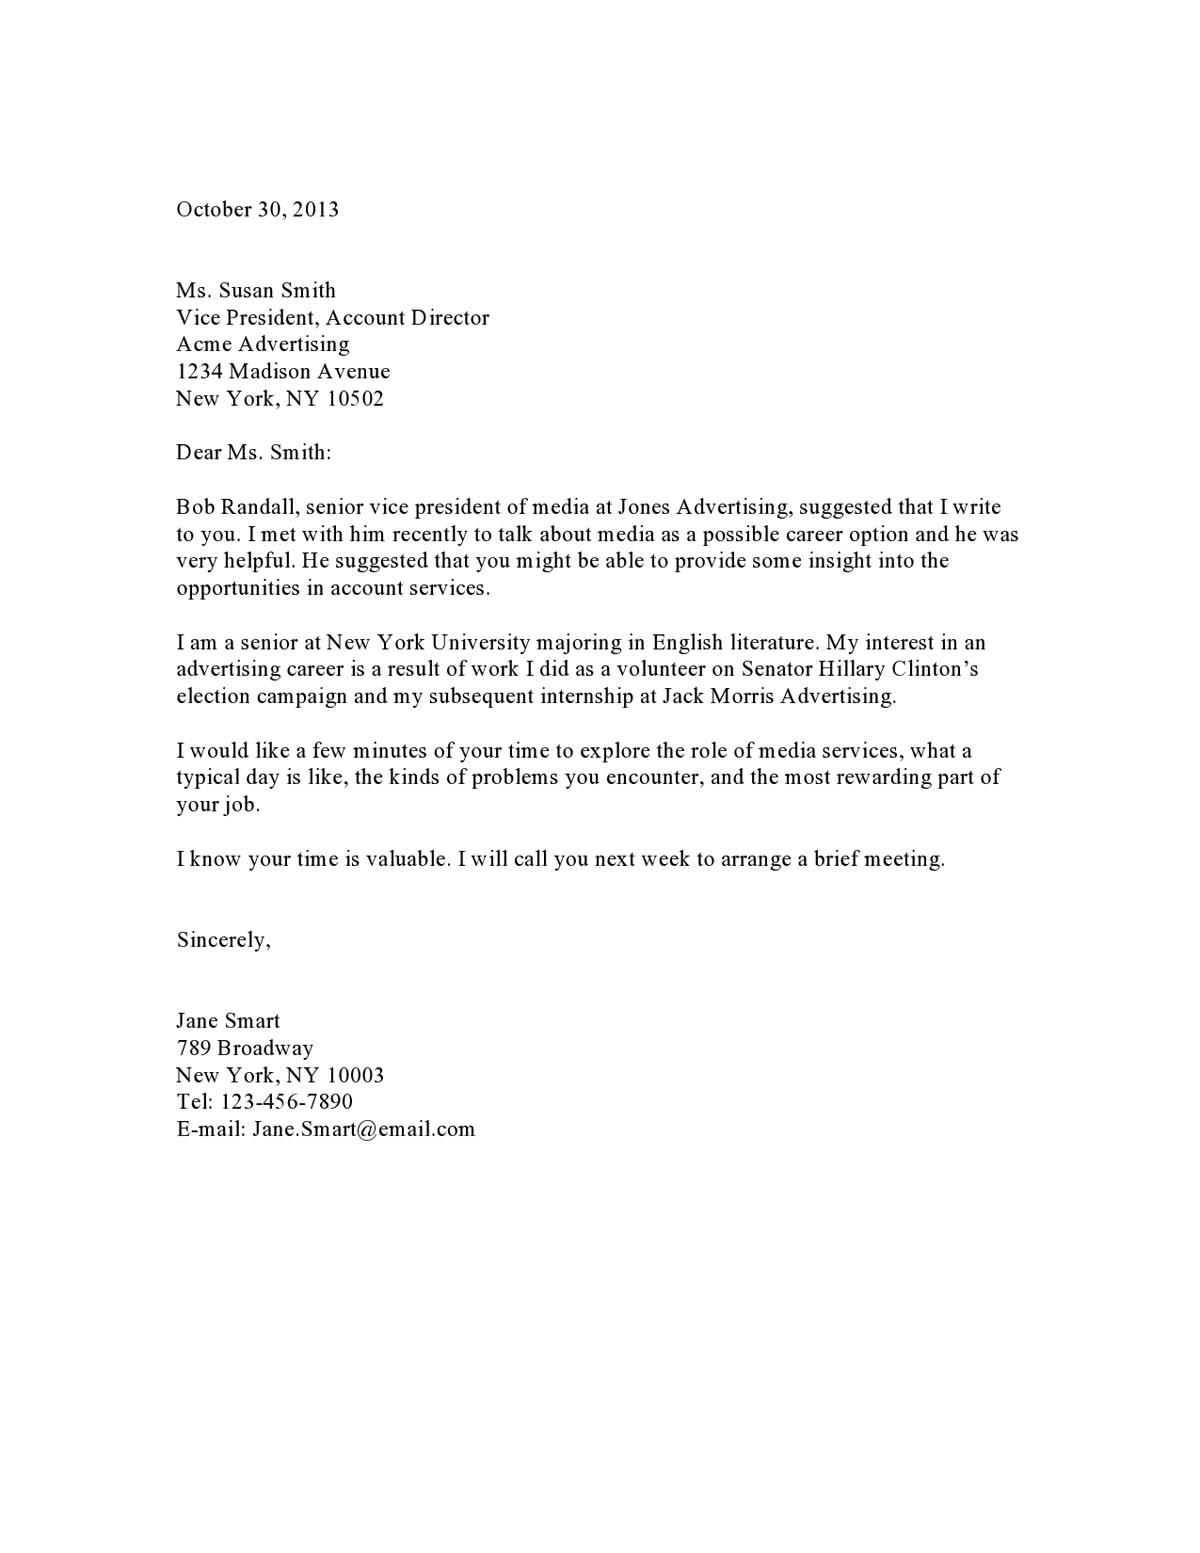 Sample cover letter for applying a job for Good words for cover letters